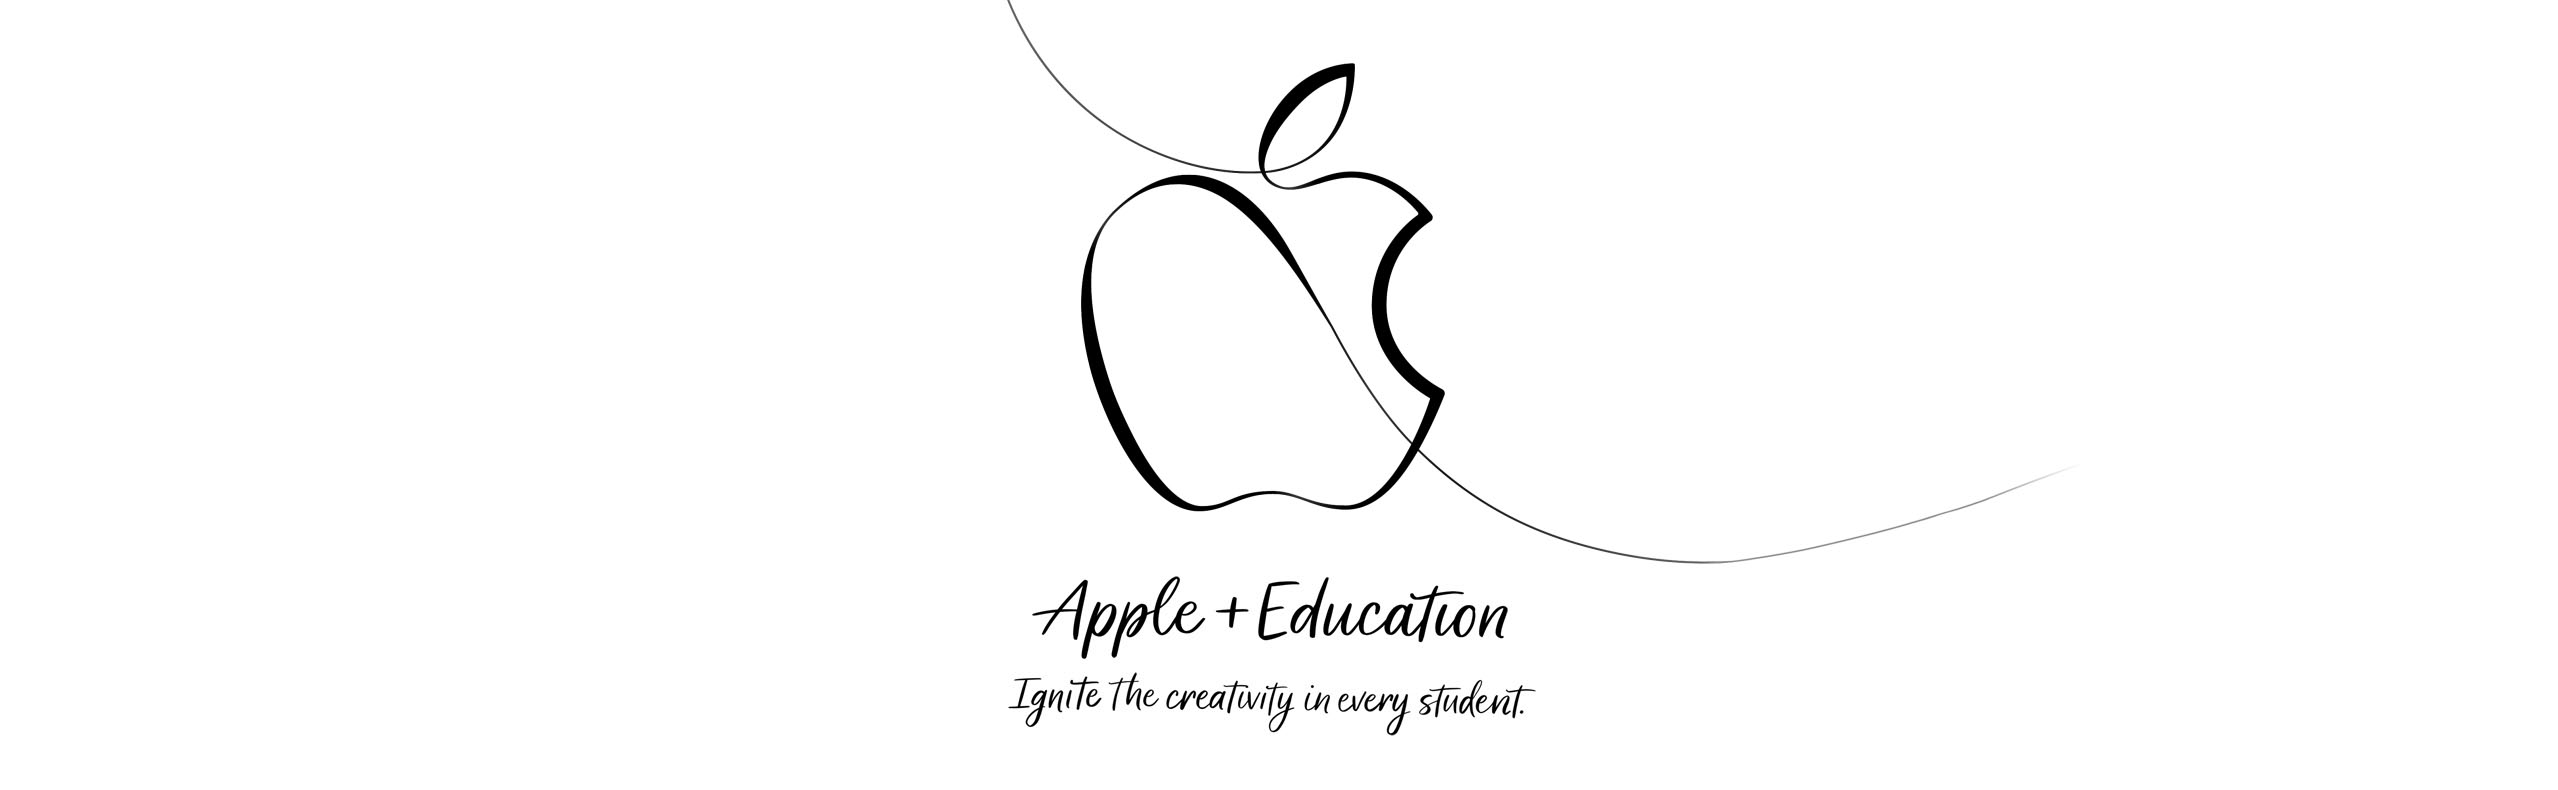 apple education event banner